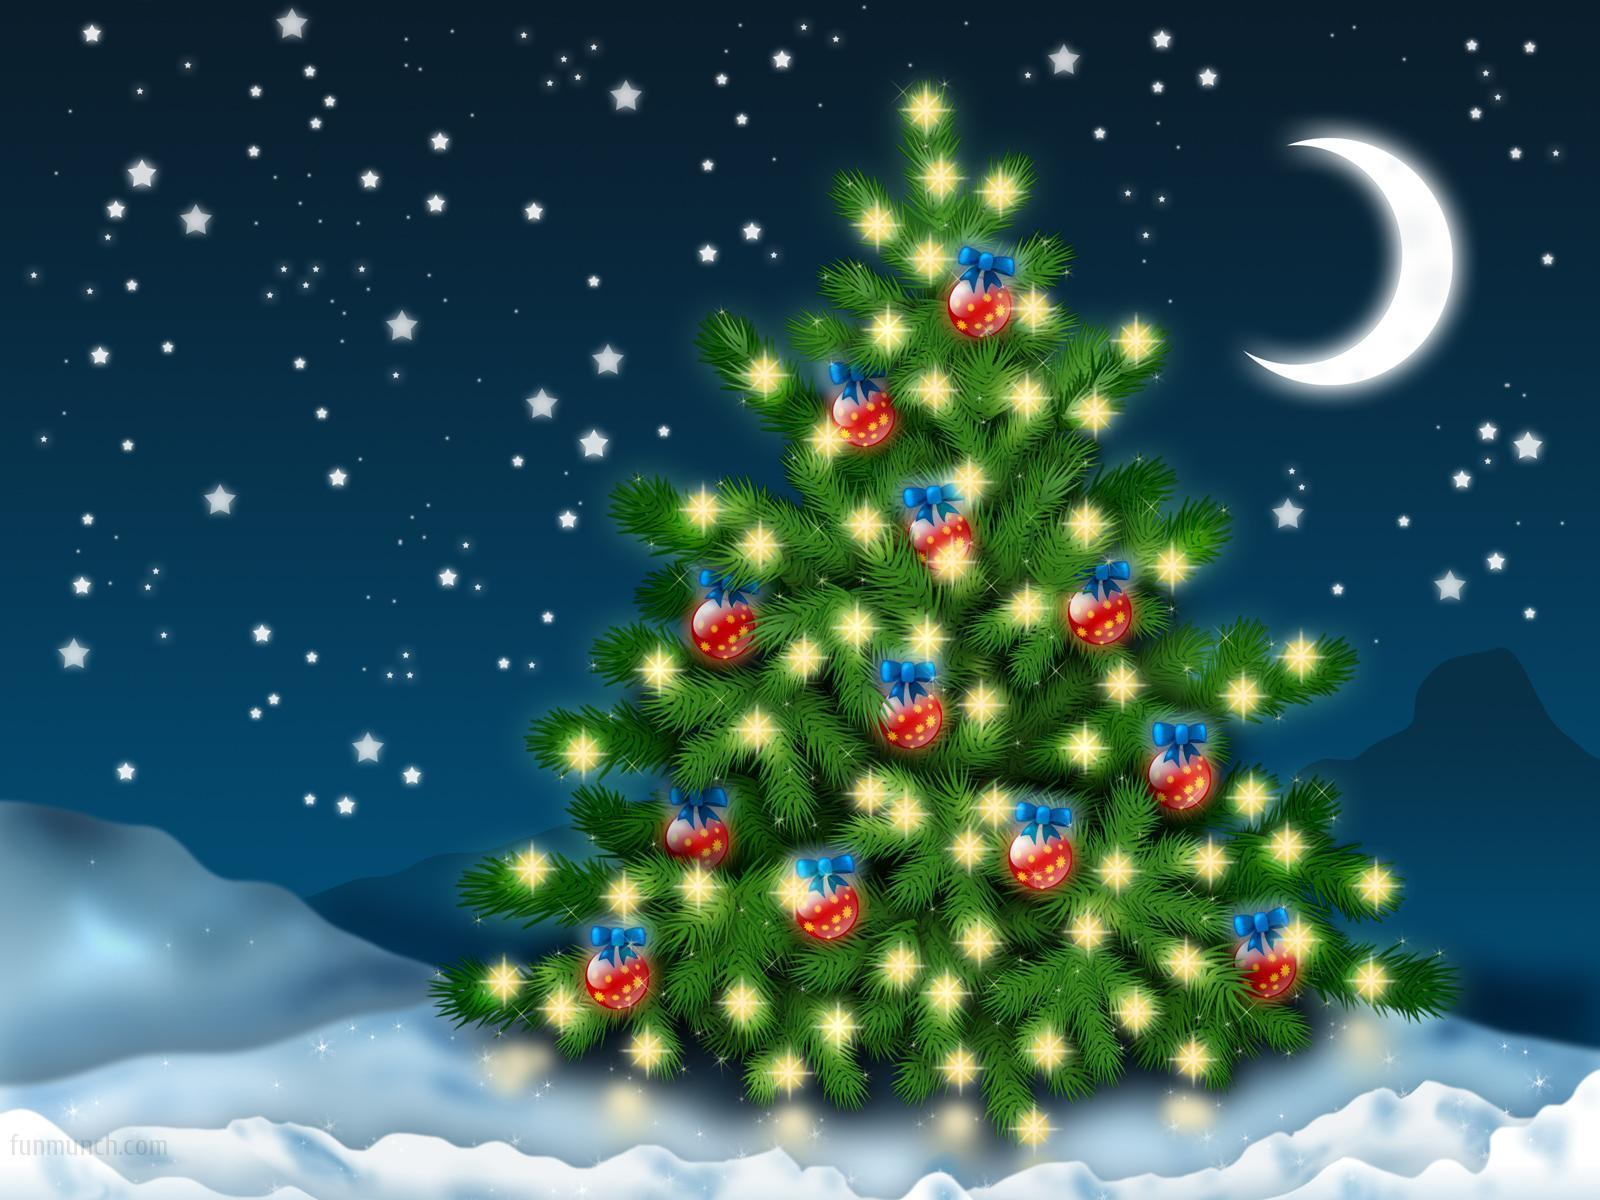 Clipart flashing christmas tree picture black and white Clipart flashing christmas tree - ClipartFest picture black and white